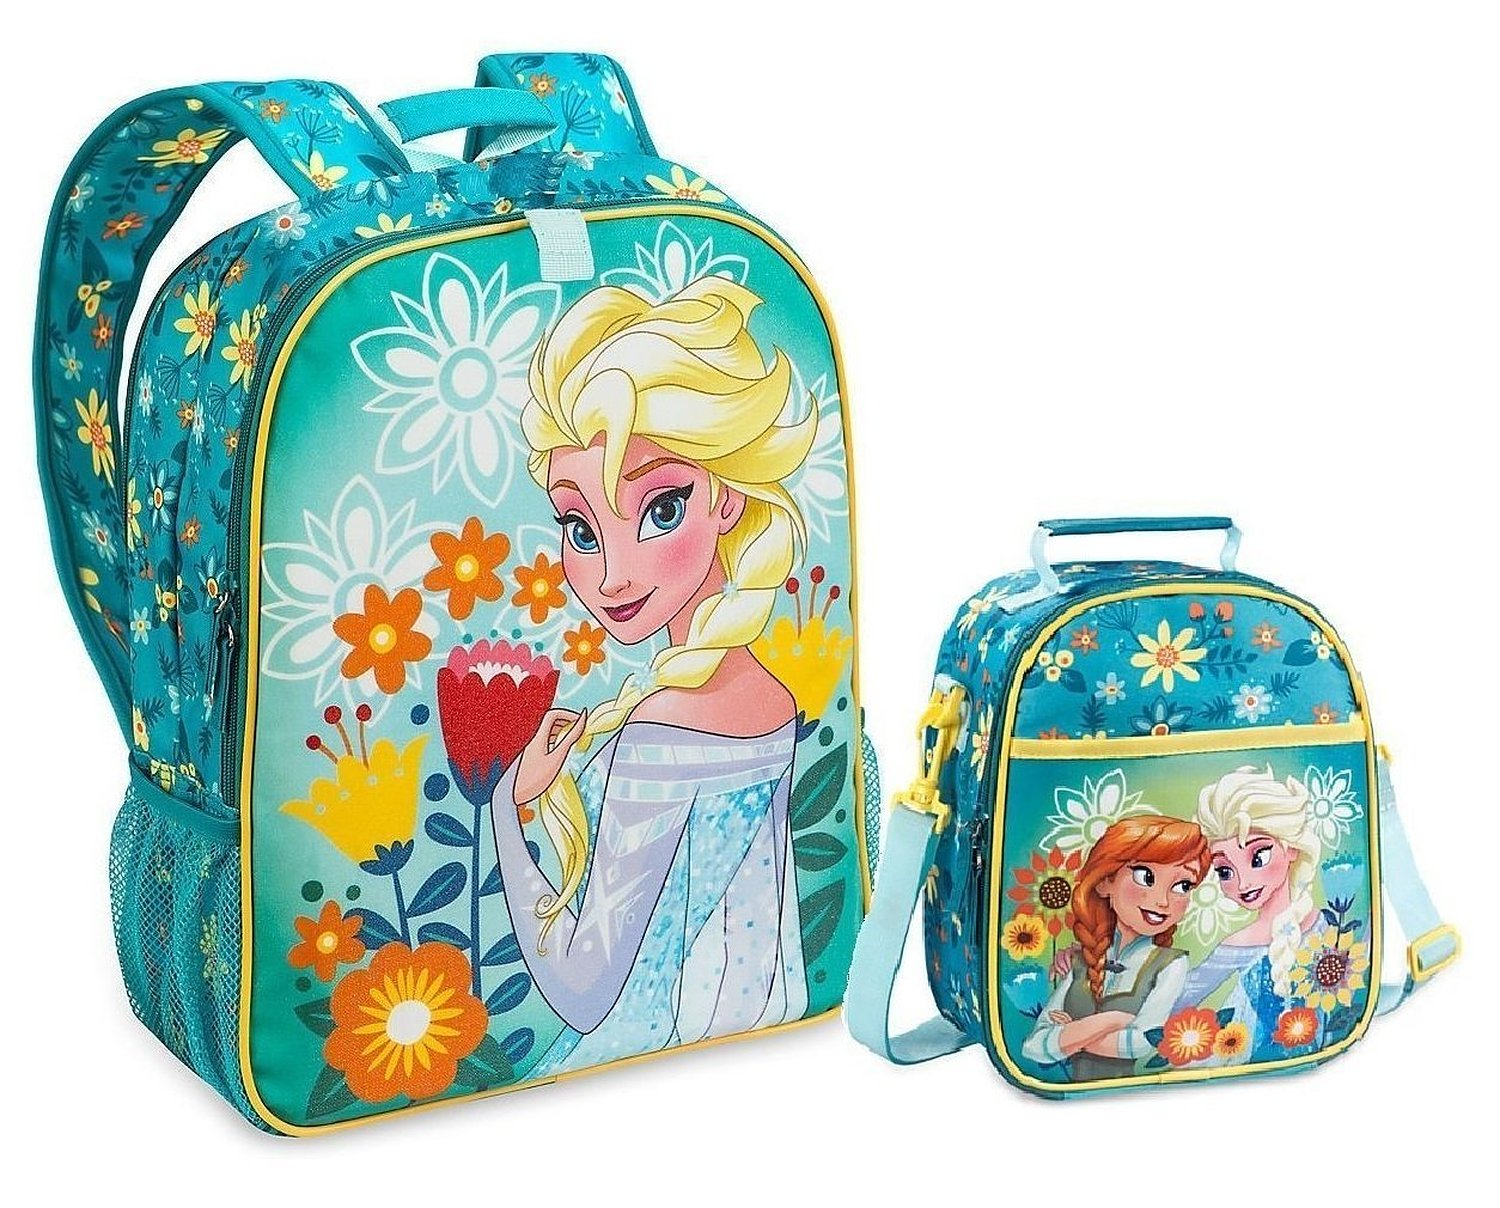 b9909ae1dd0 Get Quotations · Disney Frozen Anna   Elsa Backpack with Matching Easily  Attach Tote Bag 5StarService